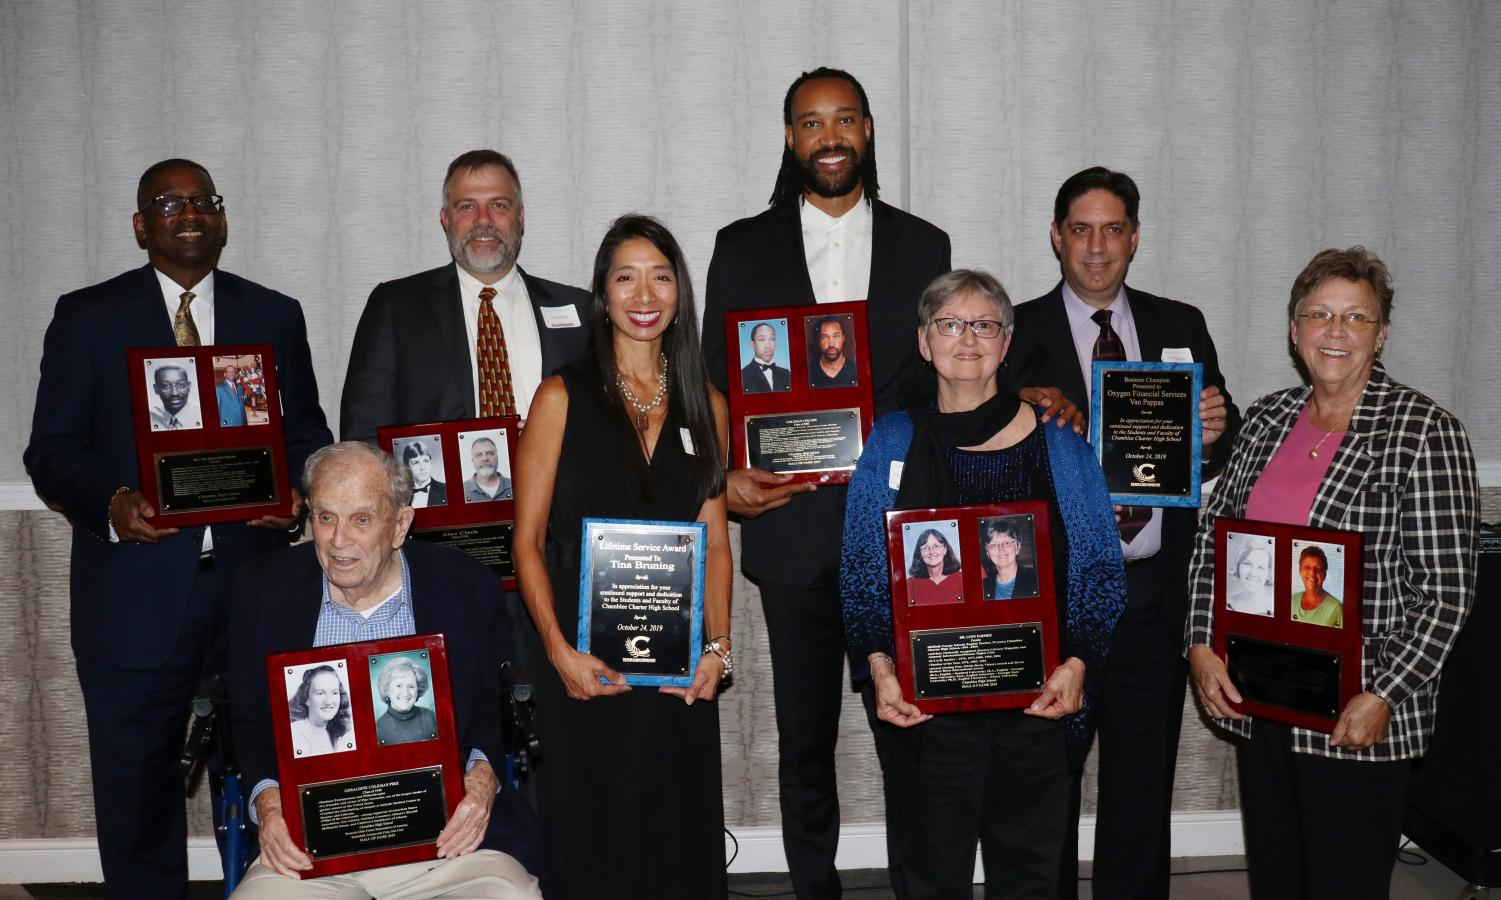 Inductees and award recipients pose for a picture at the Blue and Gold Hall of Fame.